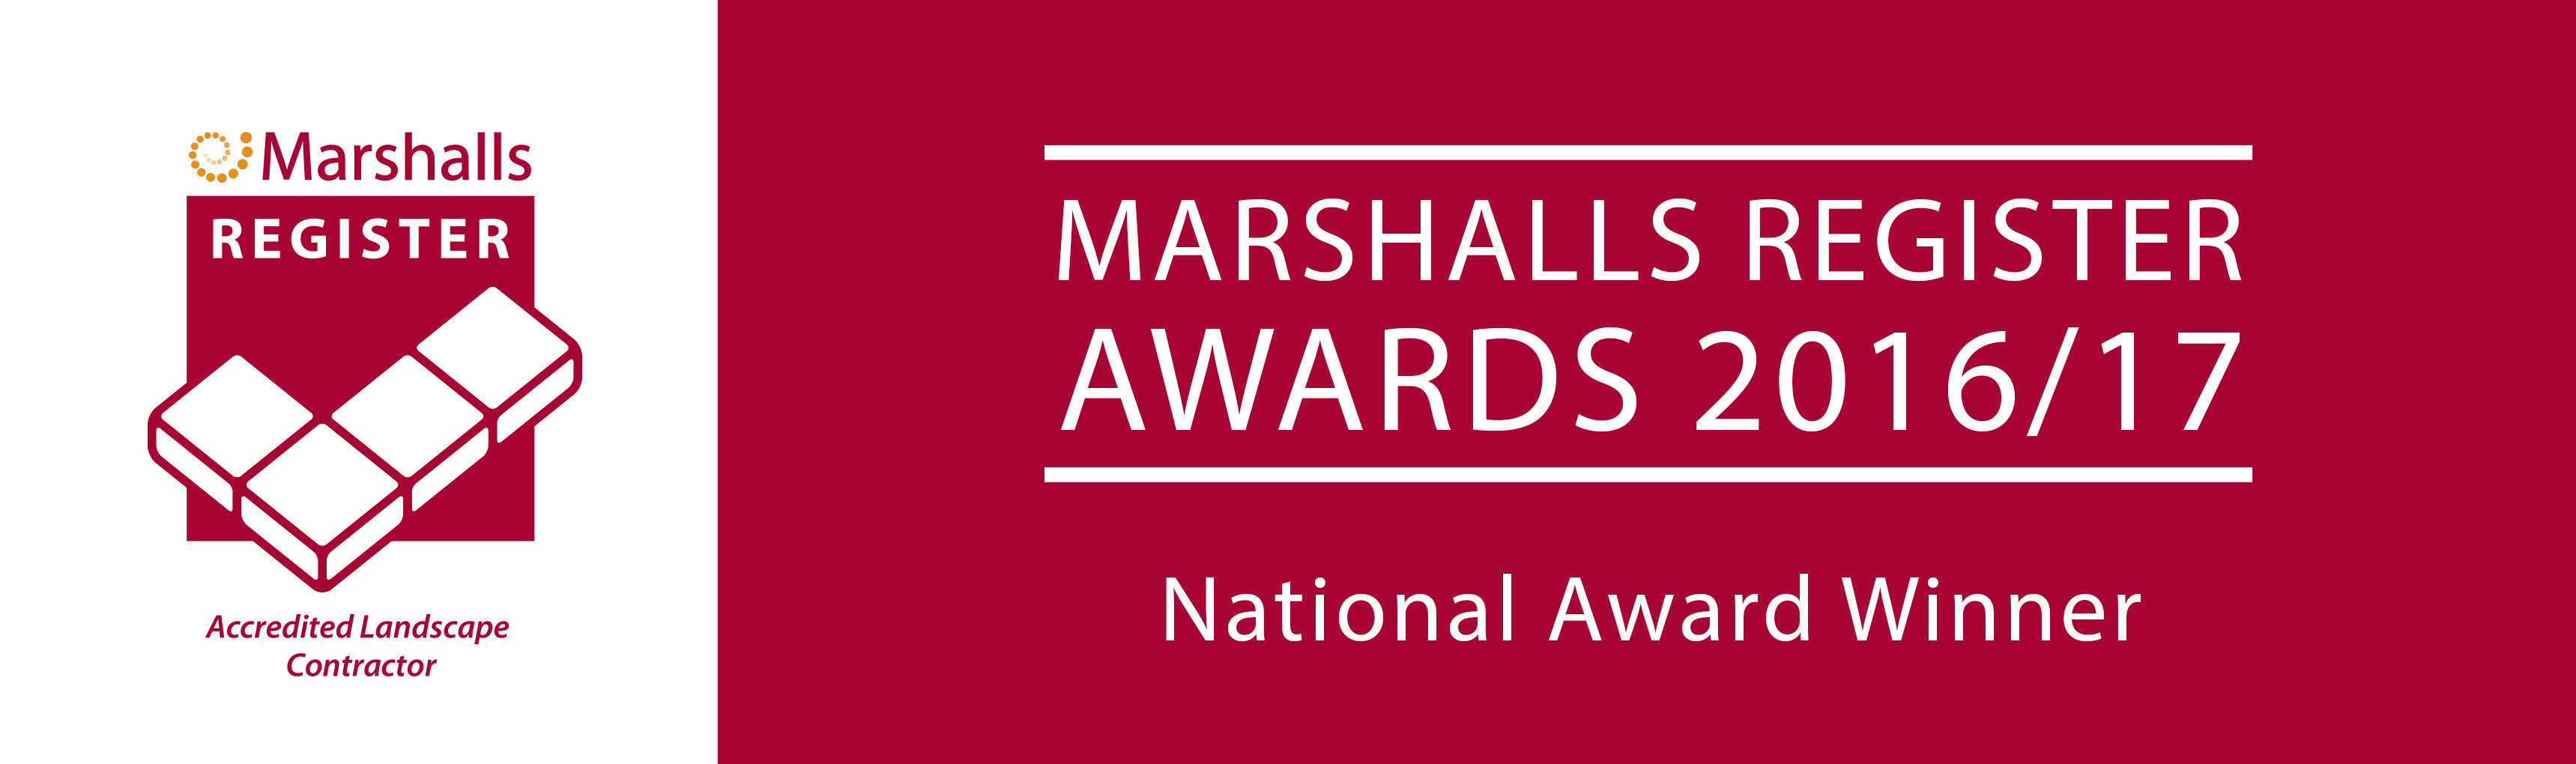 Marshalls Register Awards National Award Winner 2016-17